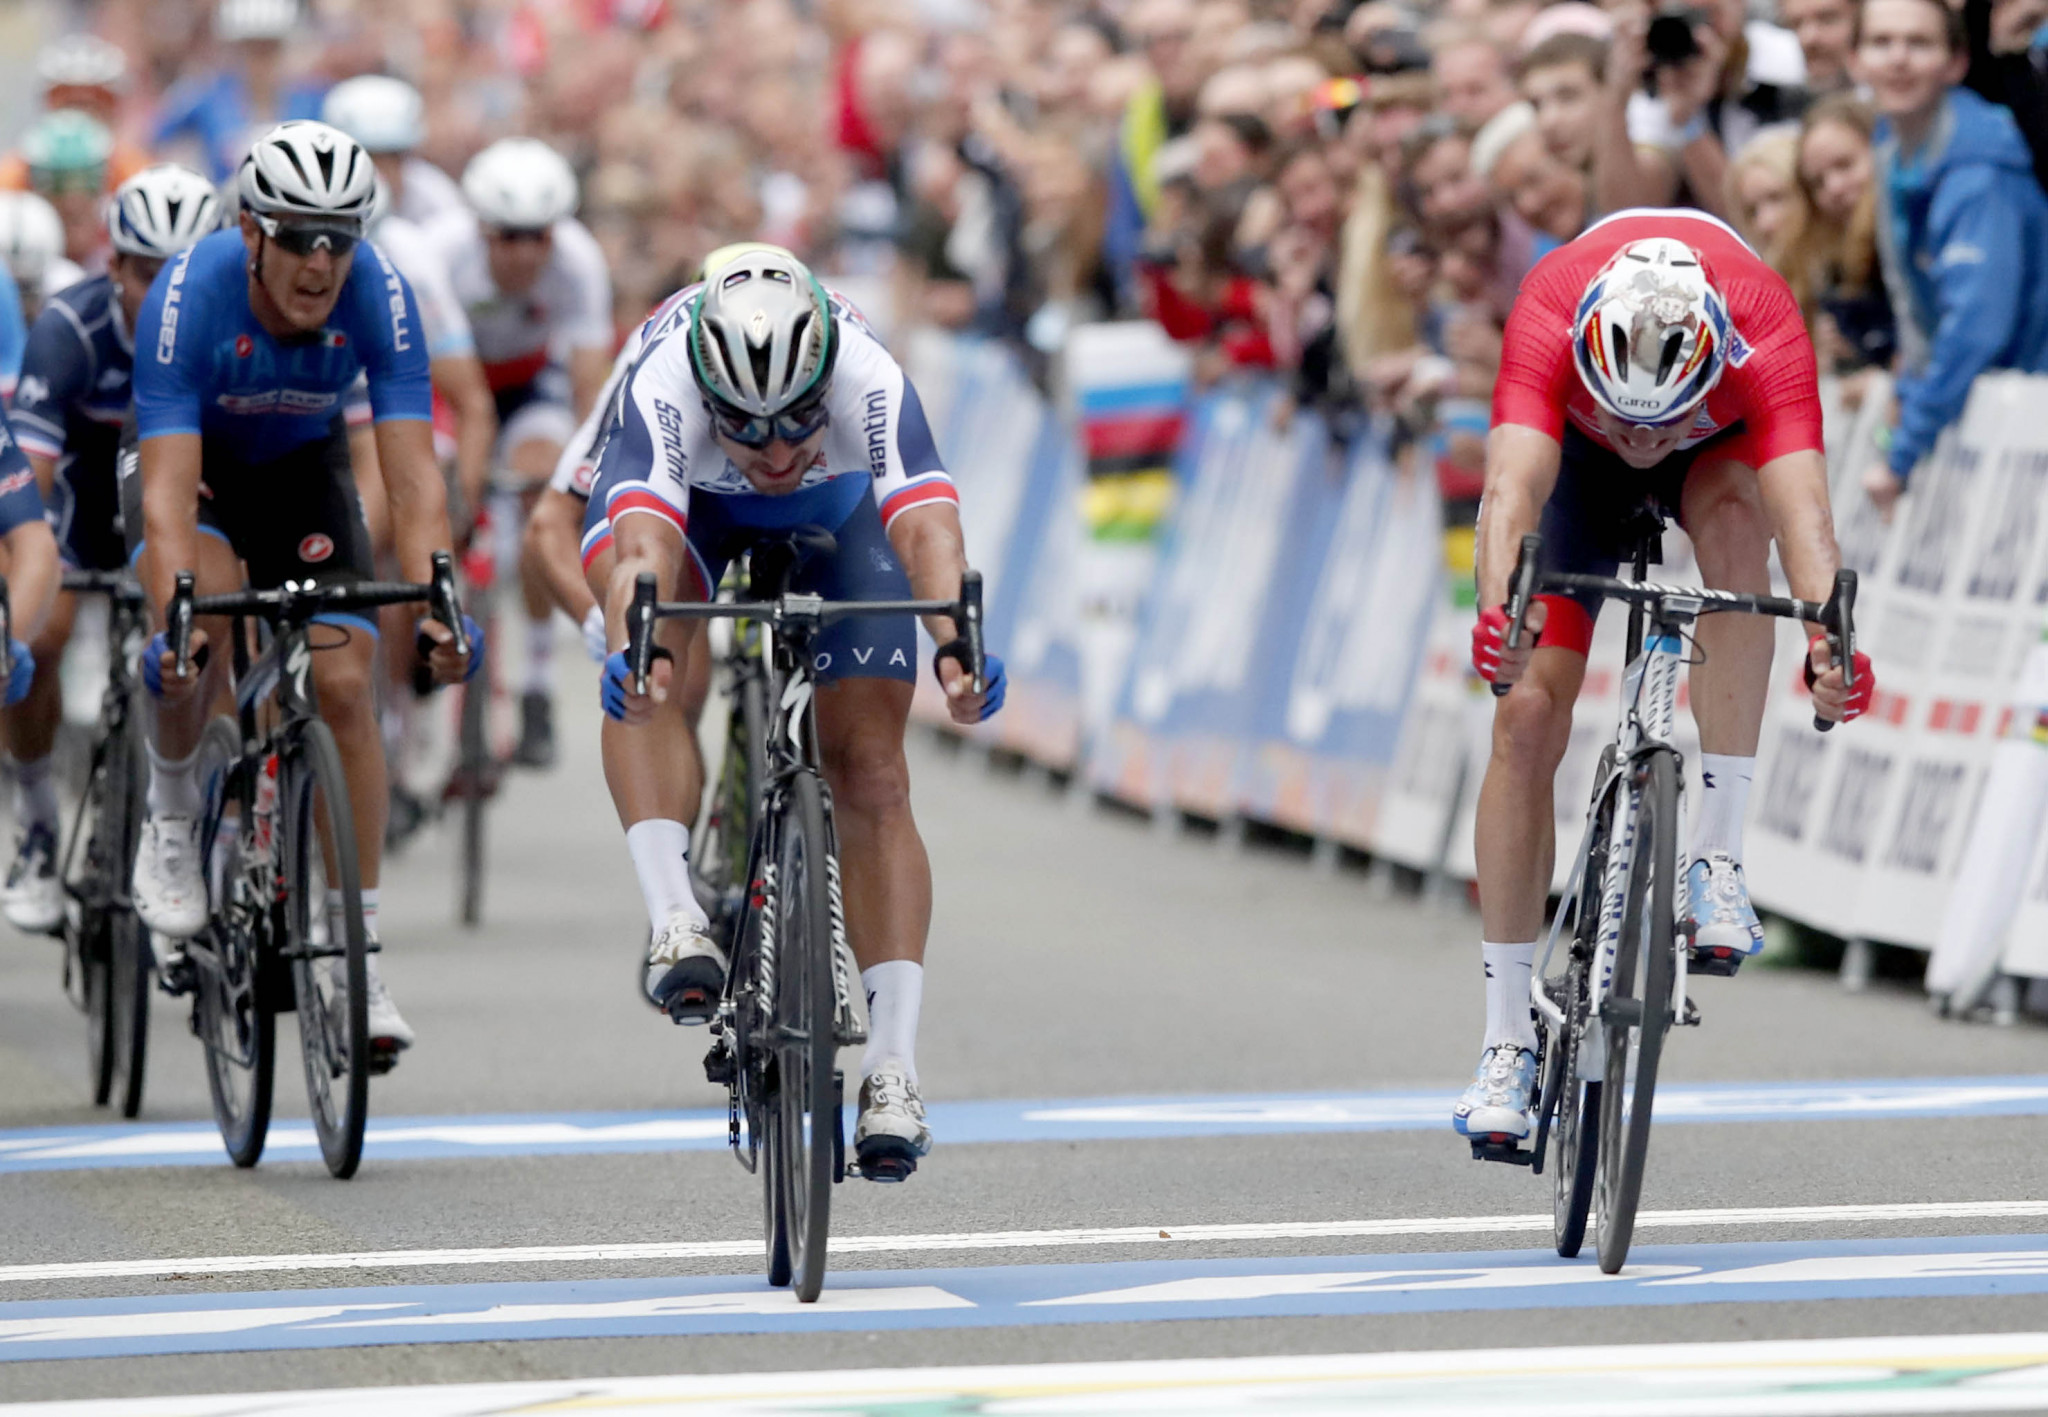 Sagan becomes 1st man to win 3 straight world road titles